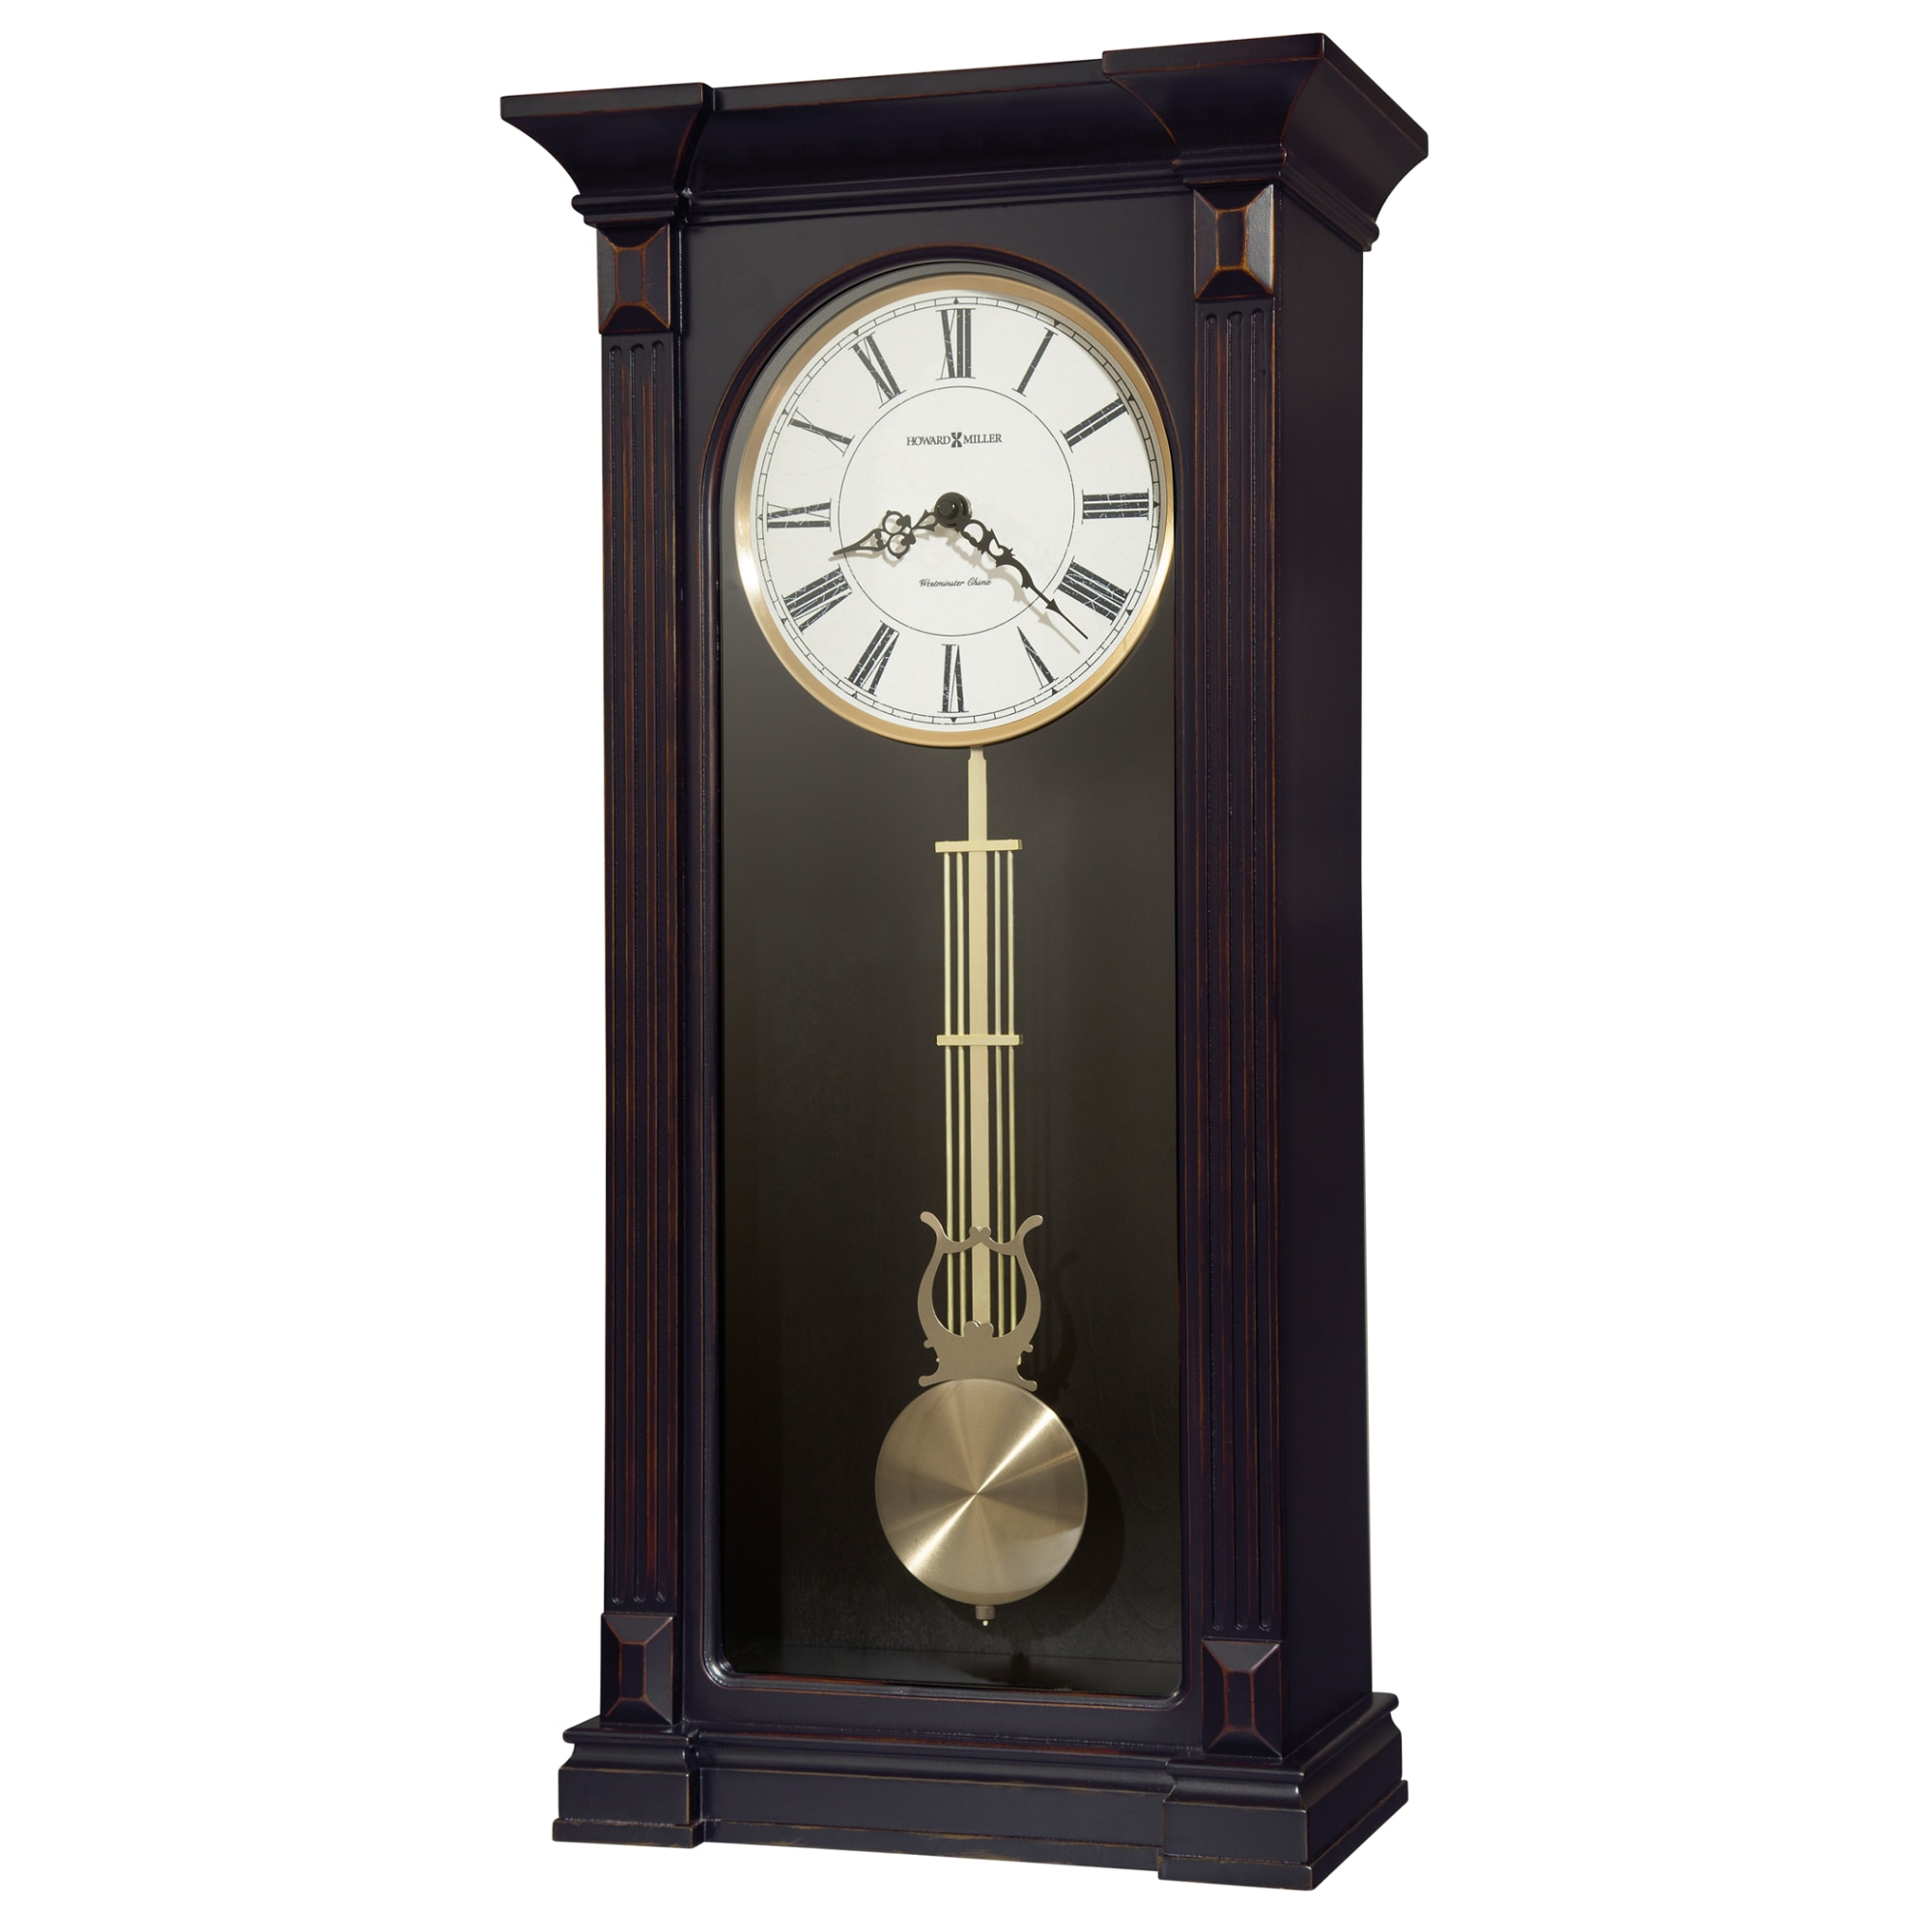 Image for Howard Miller Mia Hardwood Wall Clock 625603 from Howard Miller Official Website